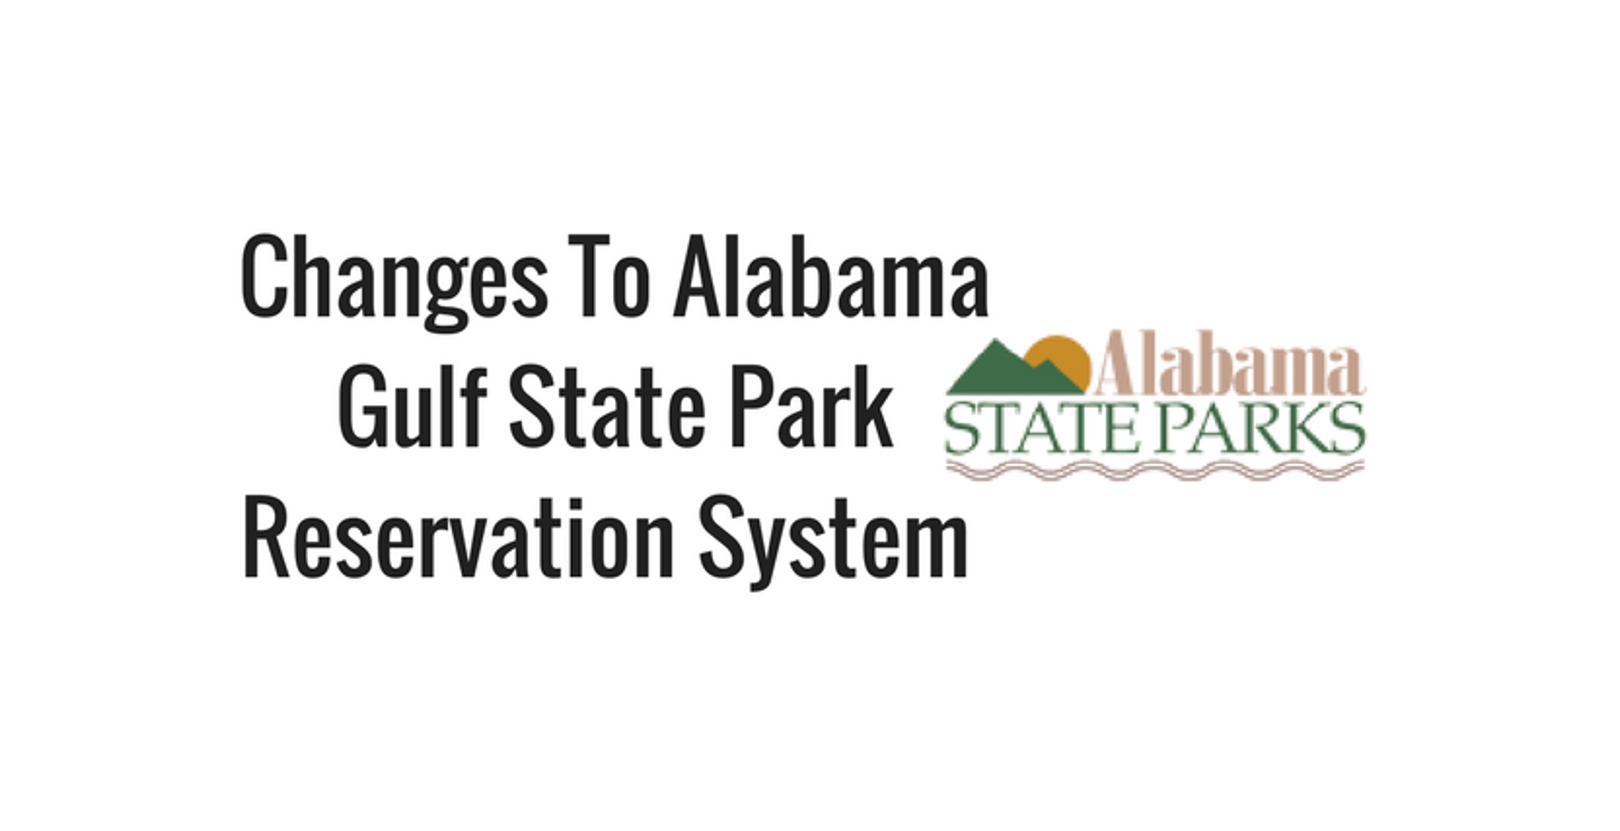 Changes in the Alabama Gulf State Park Reservation System